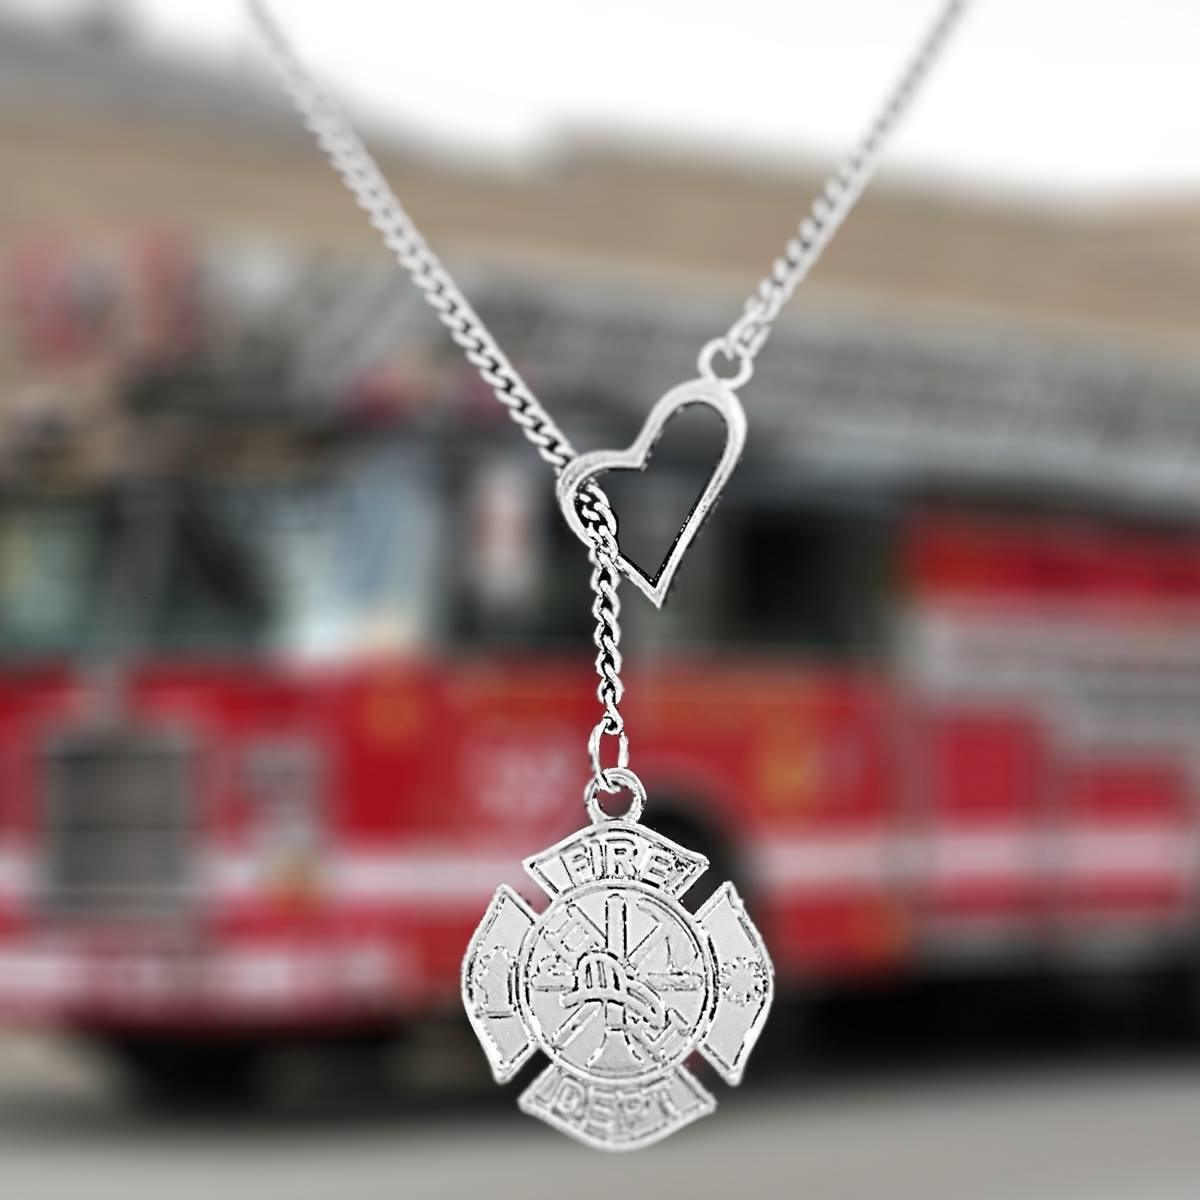 com custom pendants collectibles and education jewelry pendant cross memorials product st maltese firefighter careers awards firedogjewelry florian firedogjewelrycom